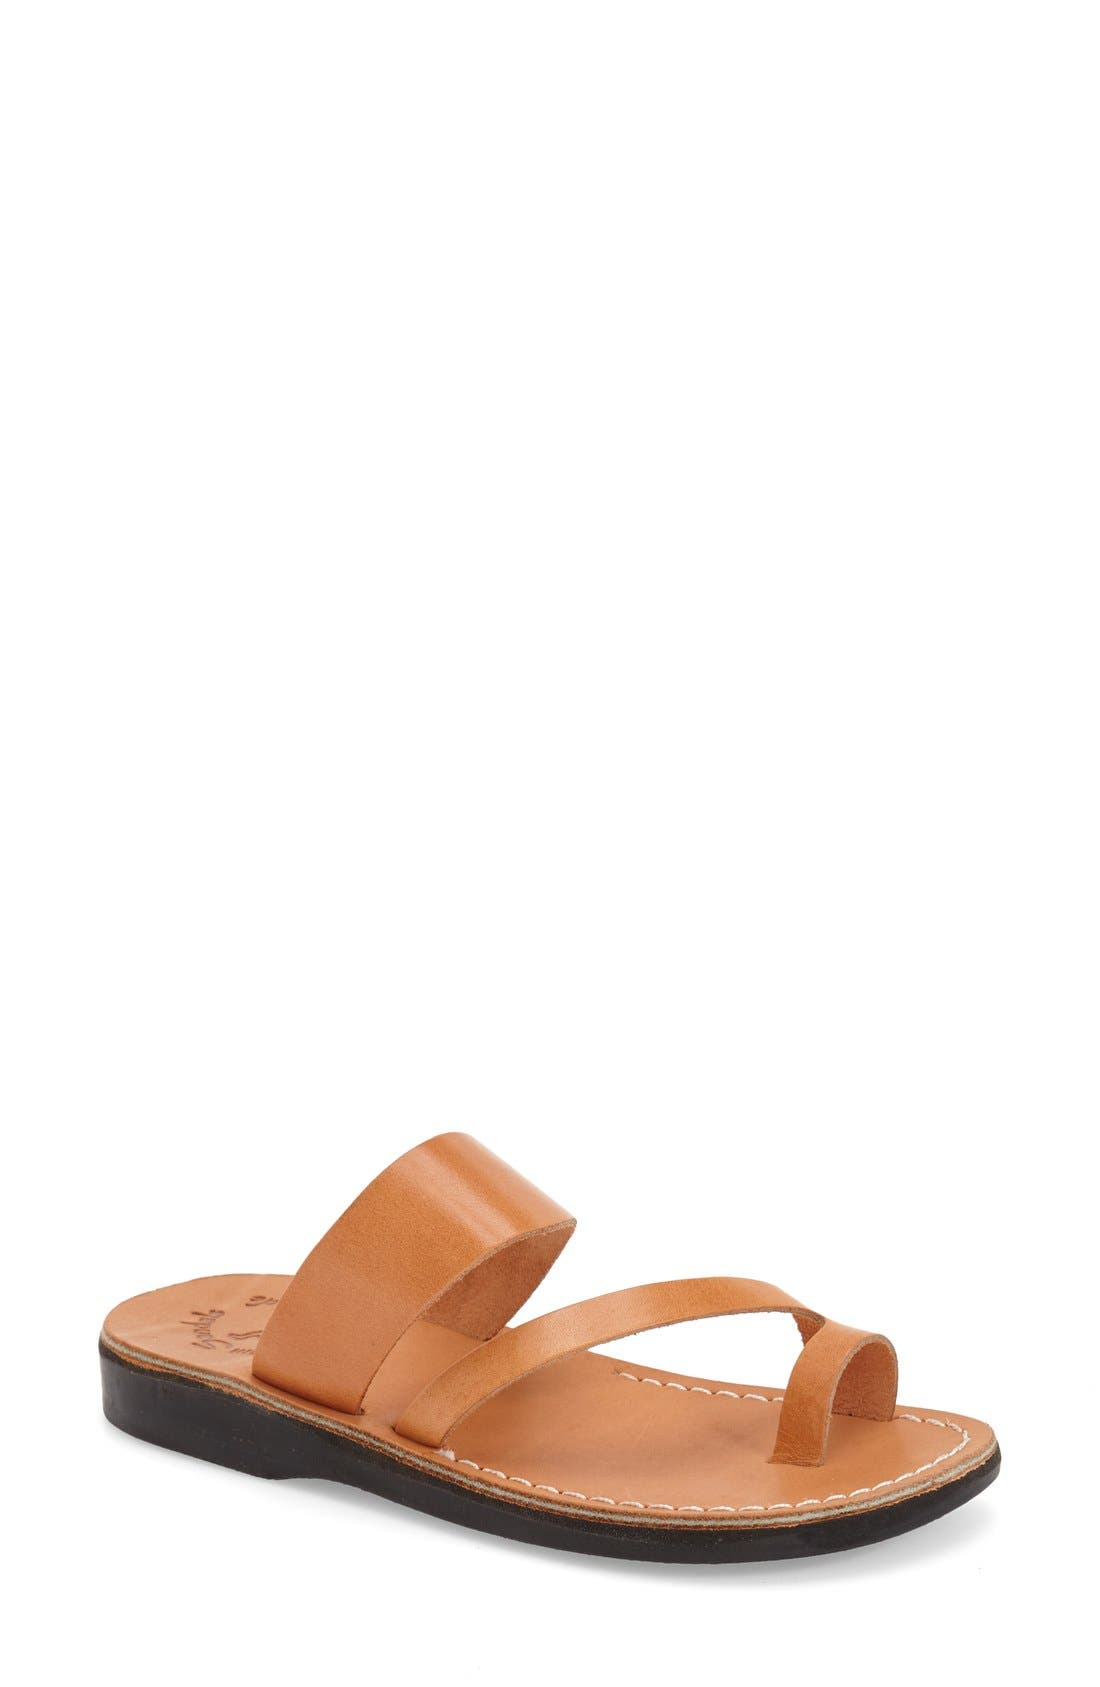 'Zohar' Leather Sandal,                         Main,                         color,